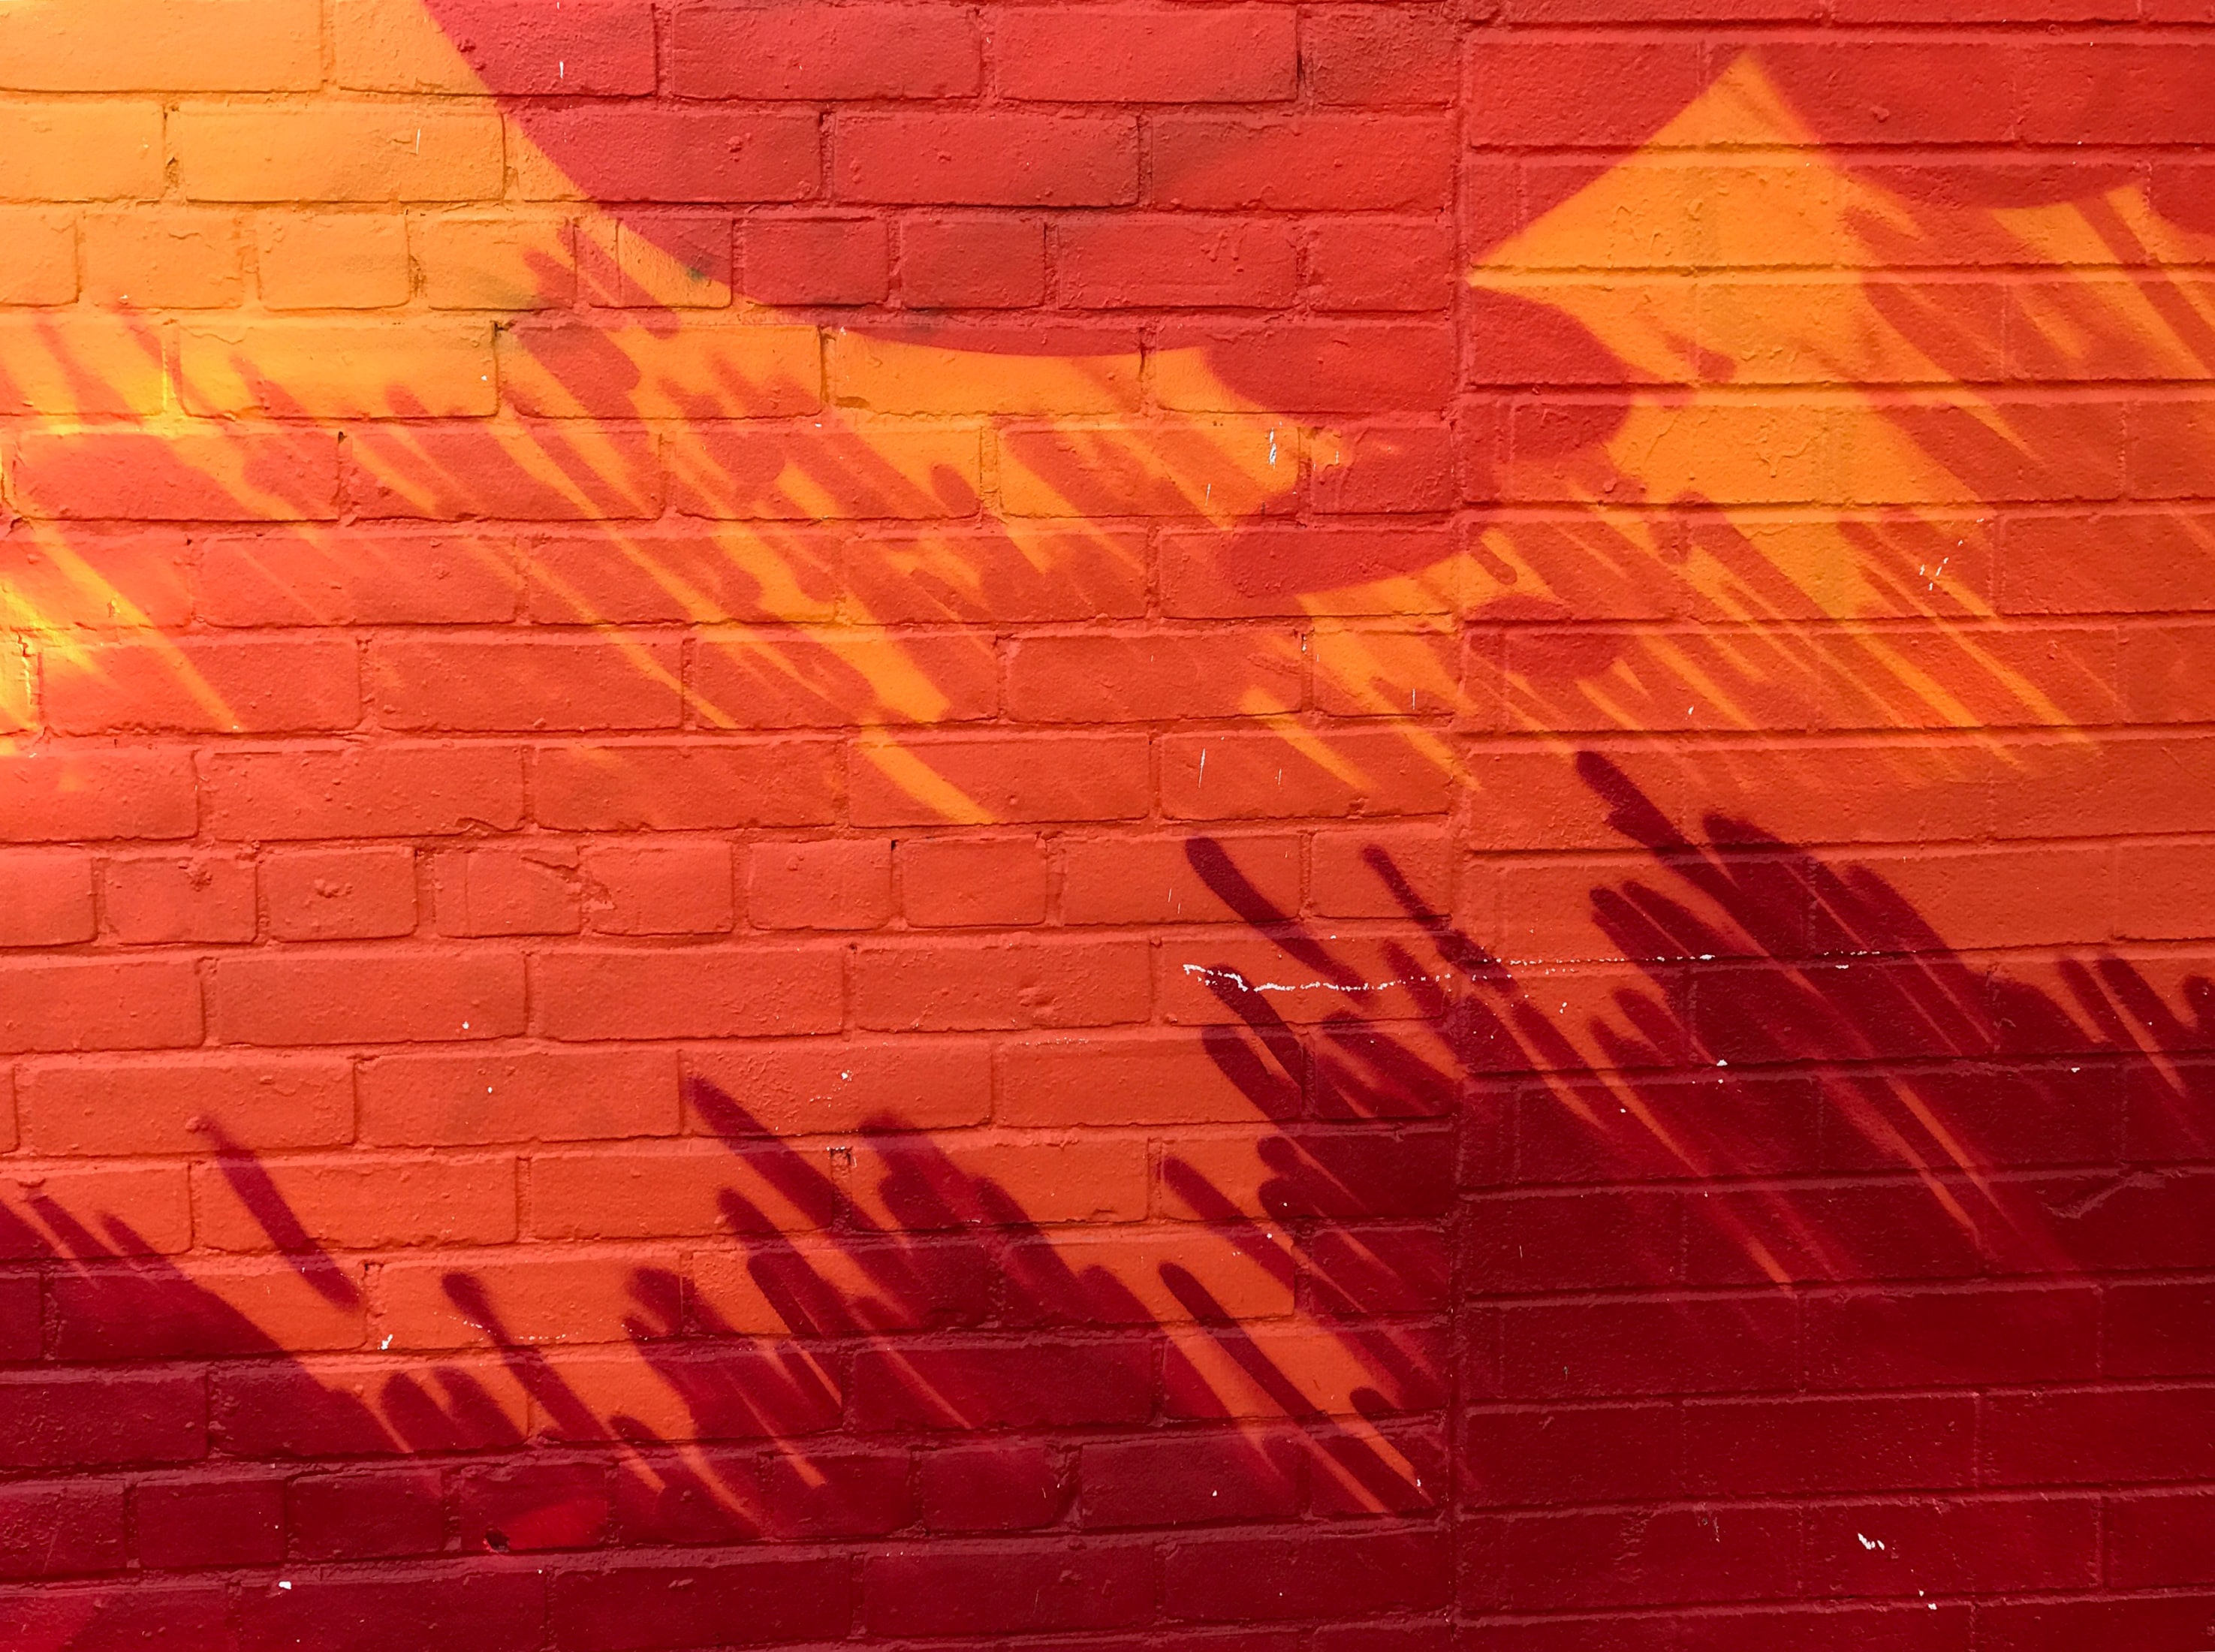 Brick wall painted shades of red and orange